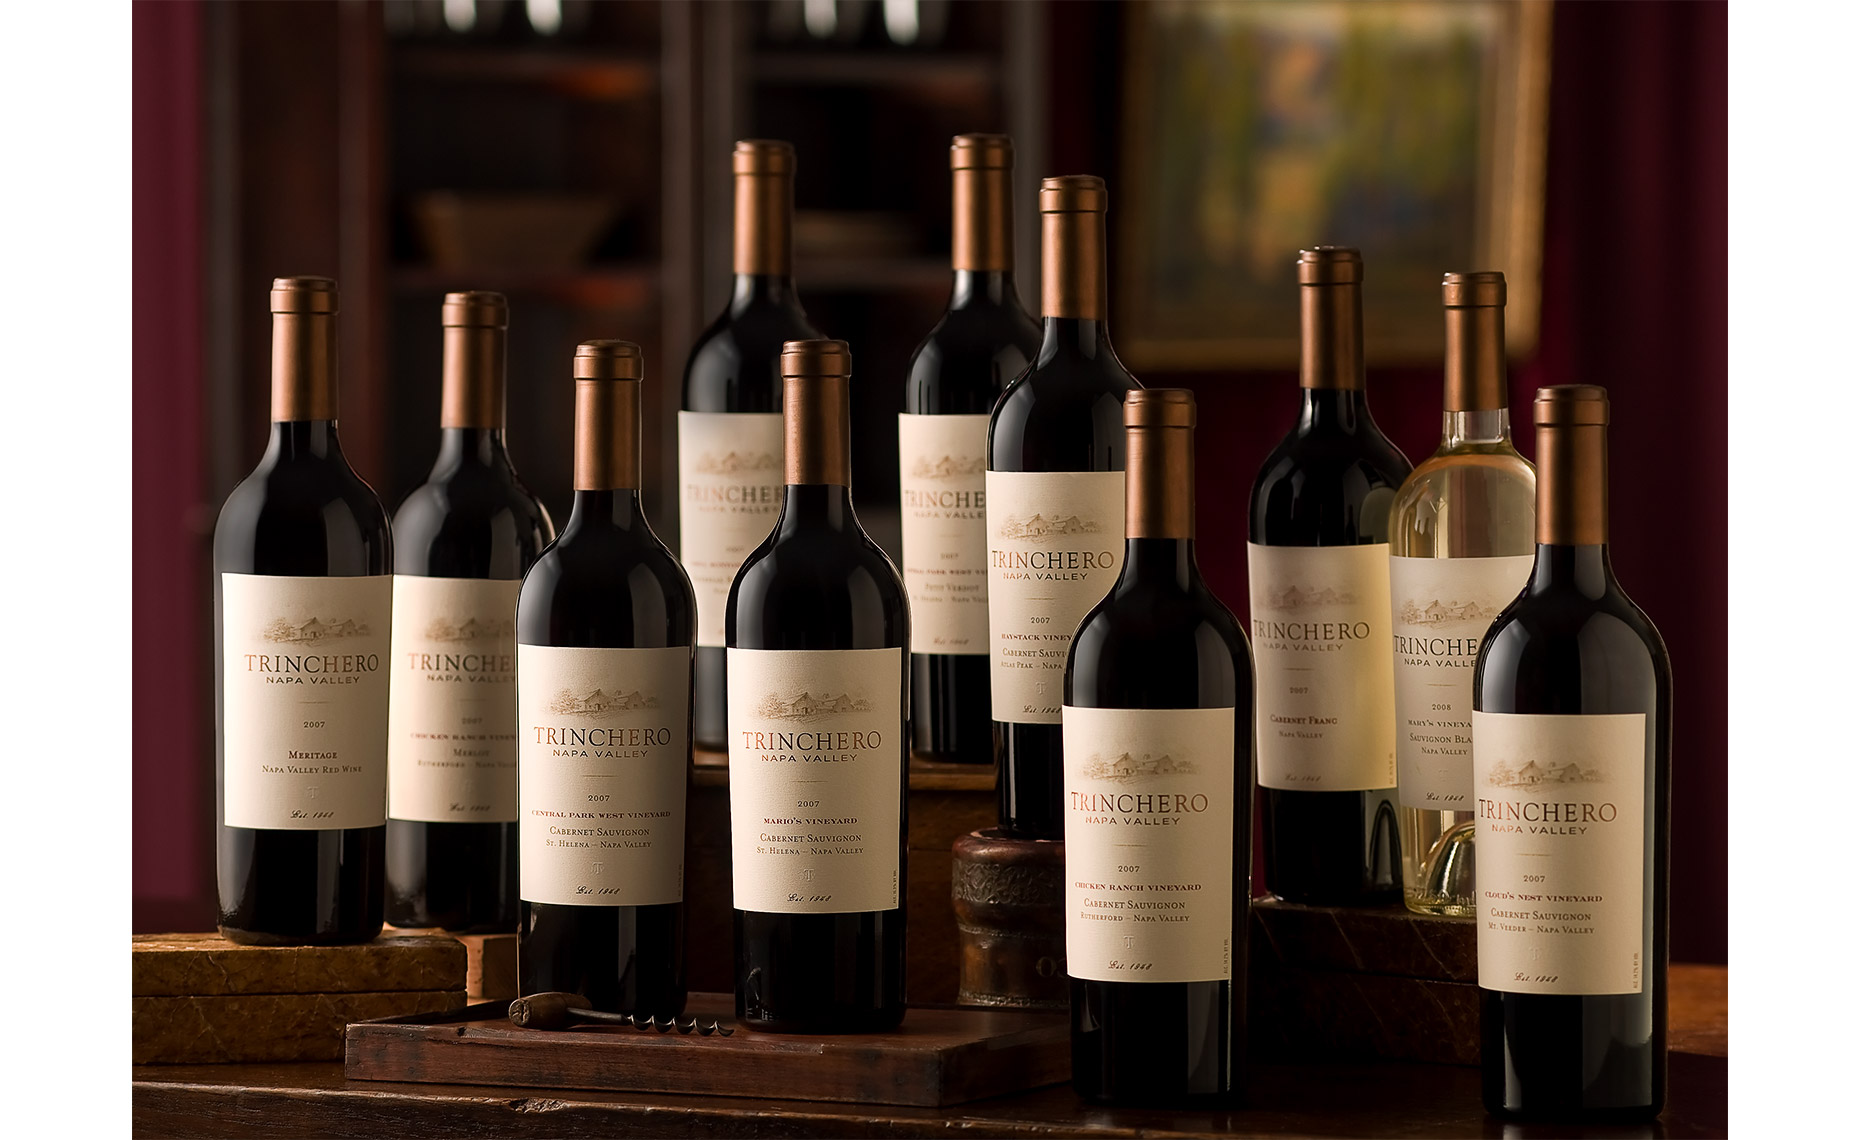 Group photo of Trinchero wines by Leo Gong drink photography